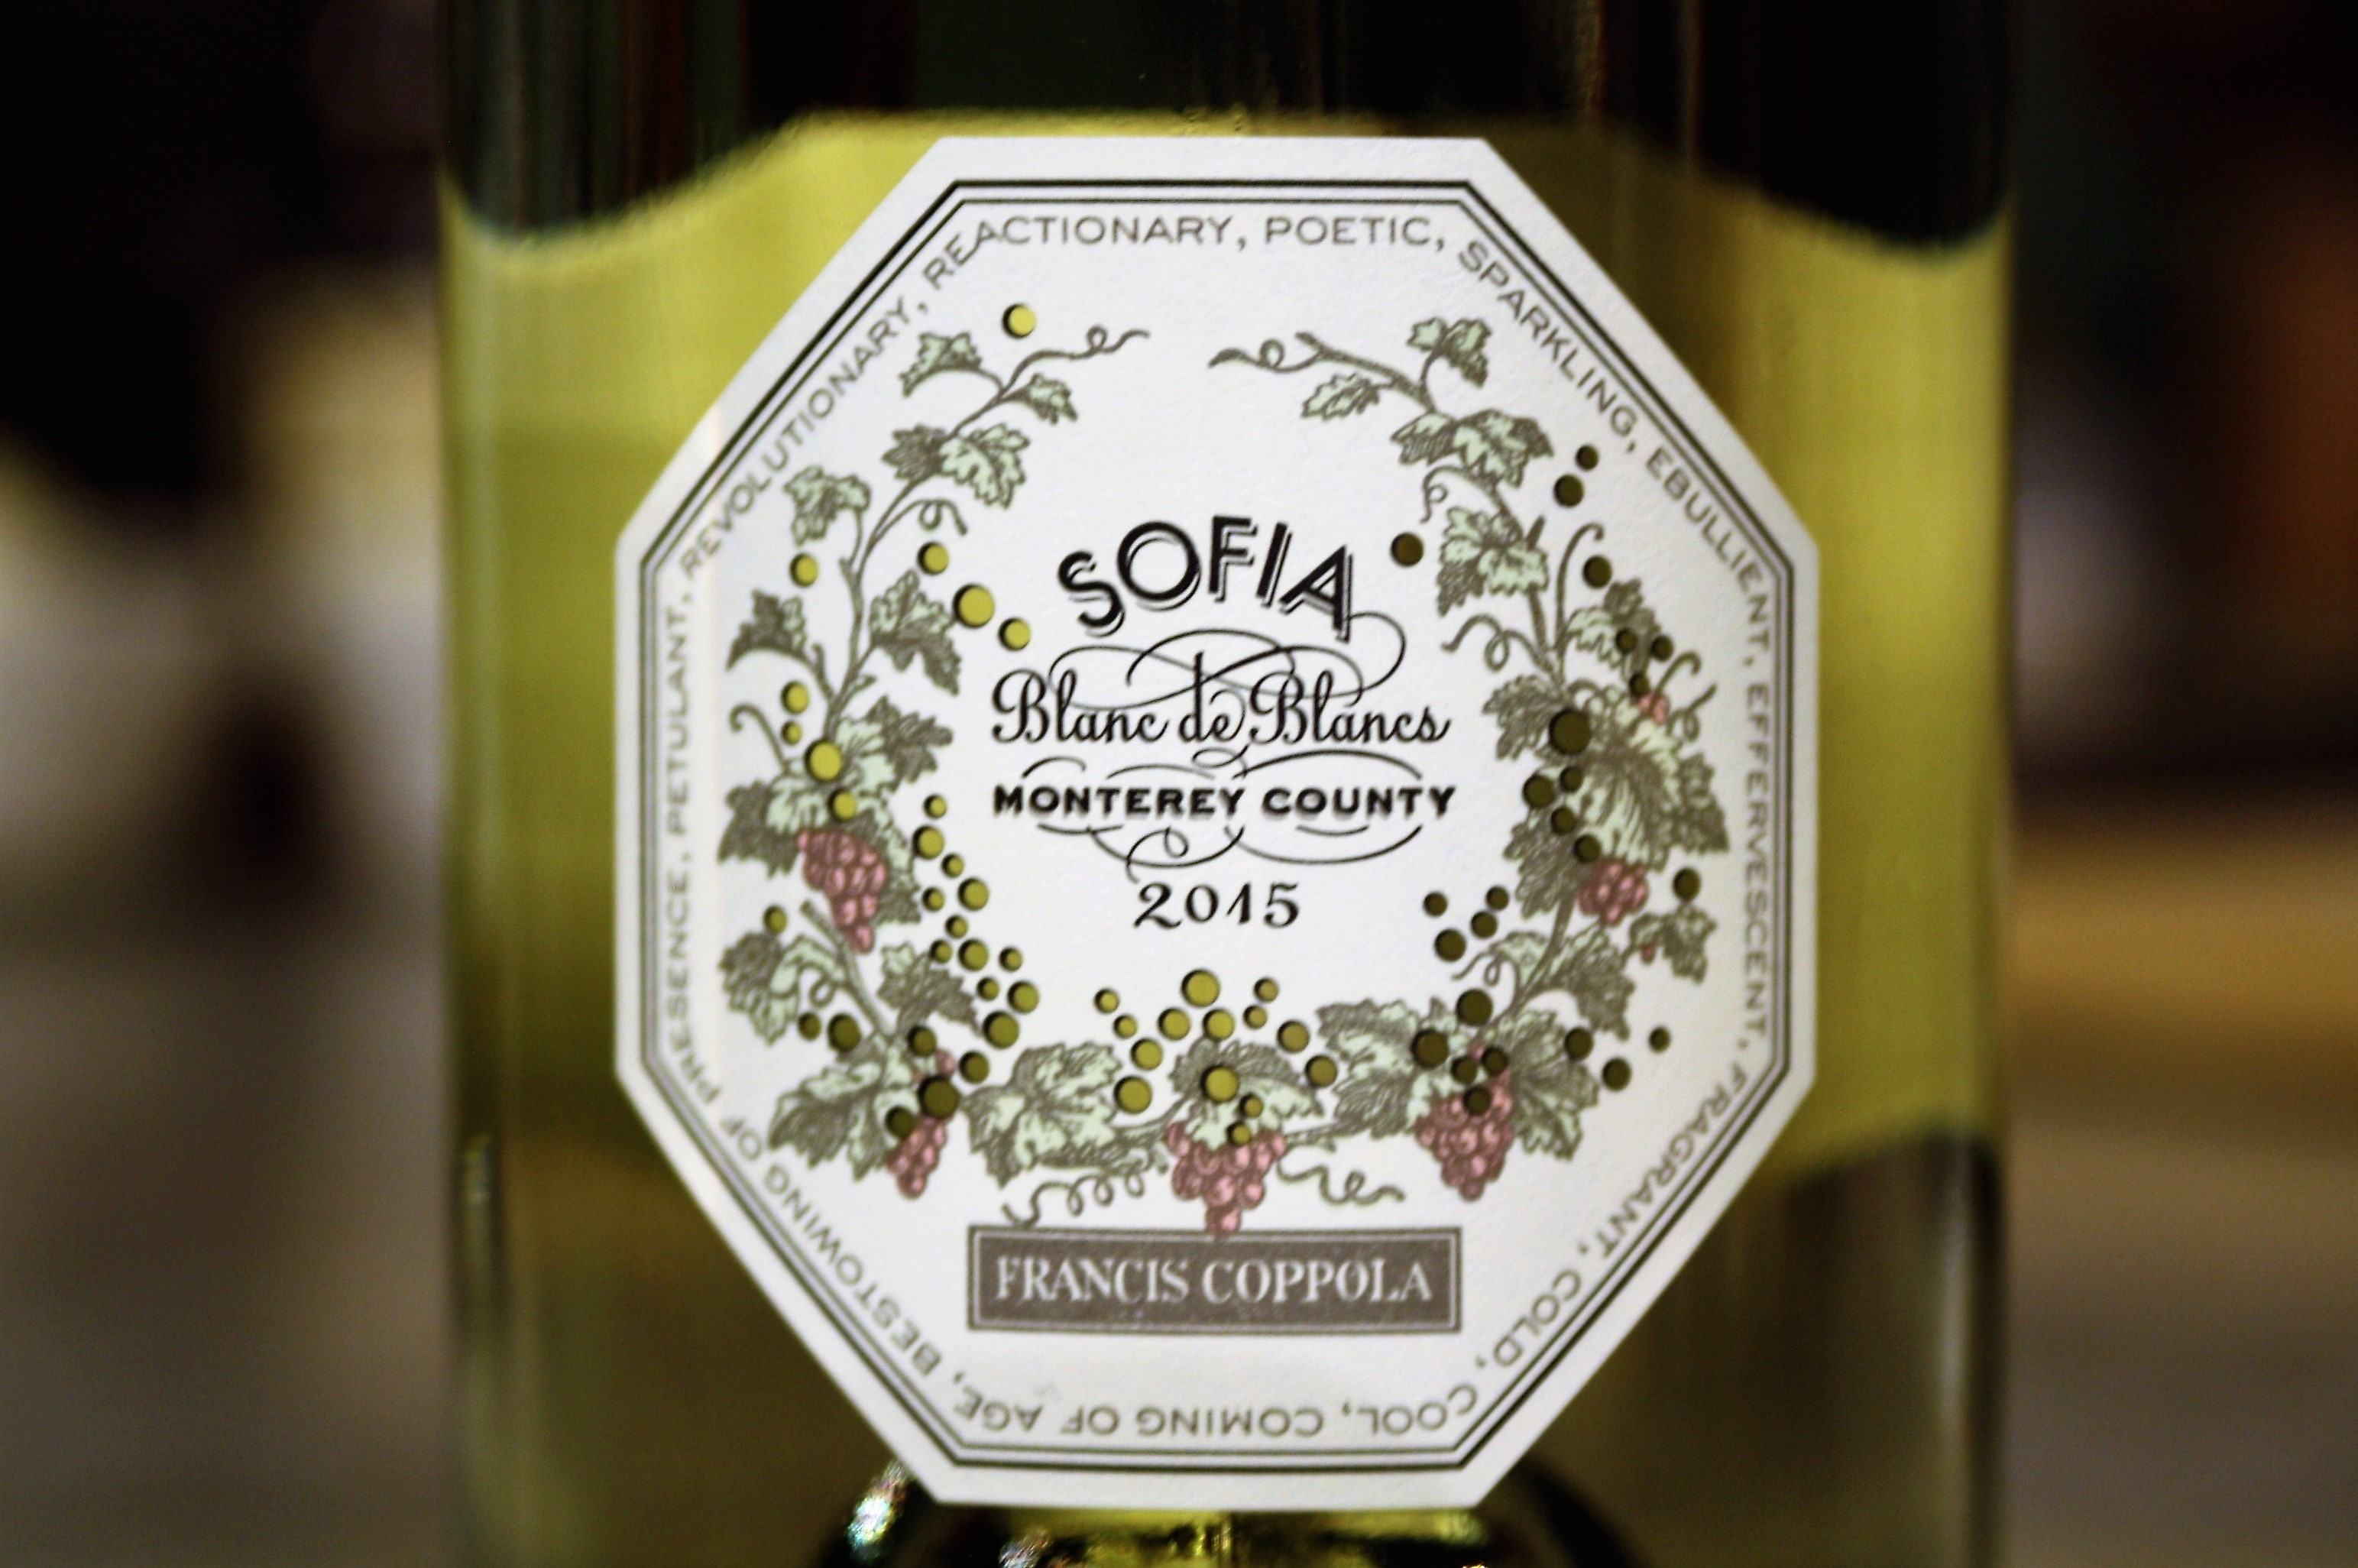 Francis Ford Coppola Winery, Monterey County Brut Blanc de Blancs Sofia (2015)